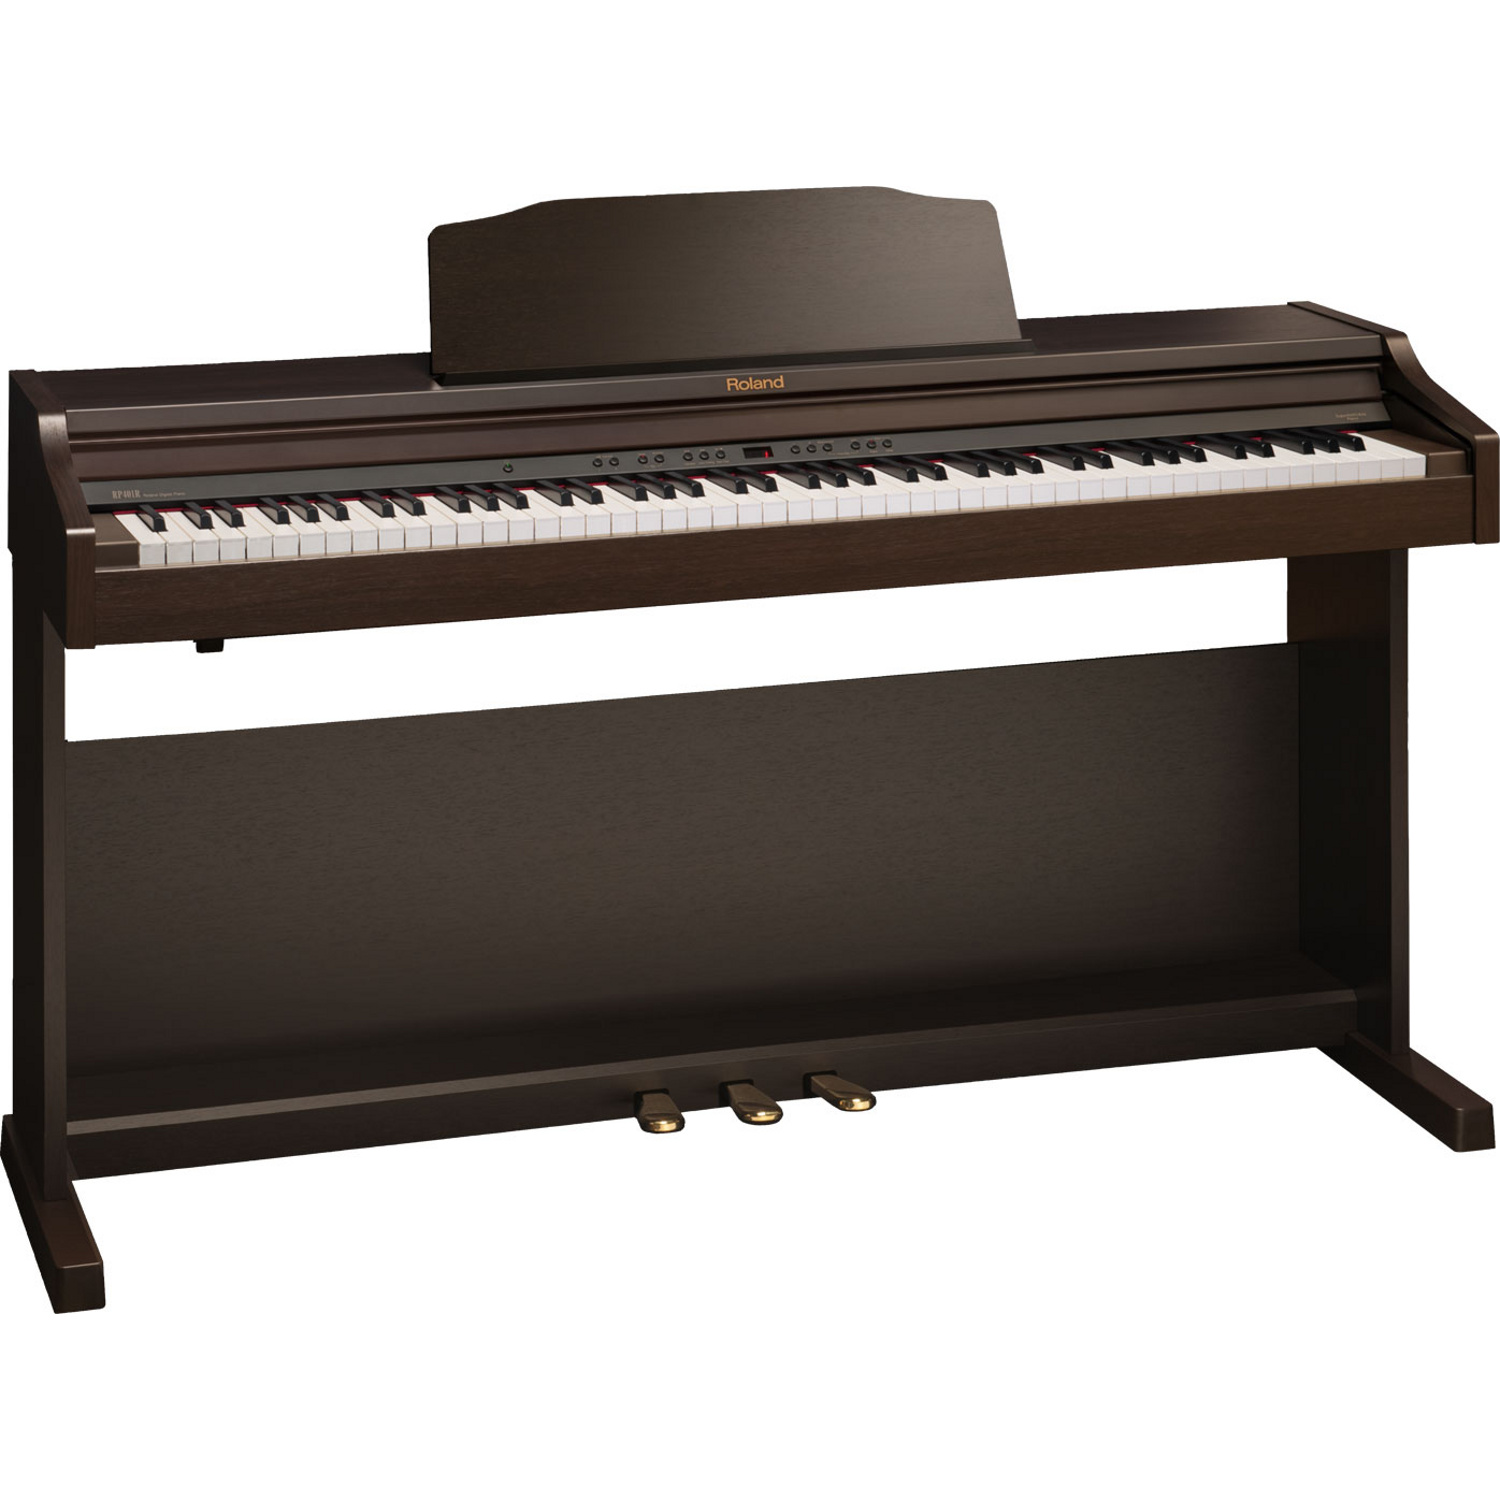 roland rp401r rw e piano rosenholz kaufen bax shop. Black Bedroom Furniture Sets. Home Design Ideas